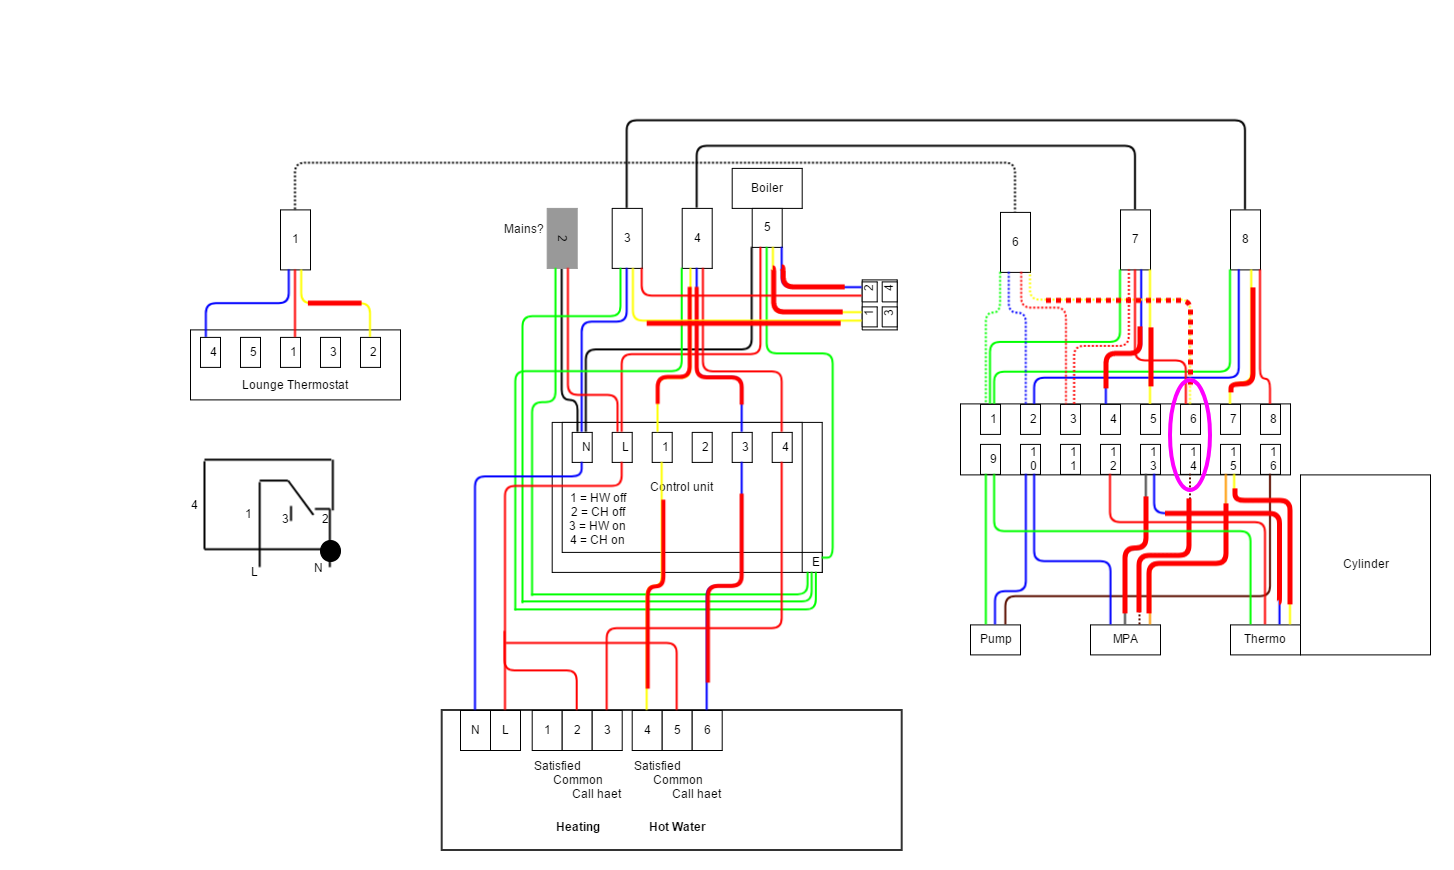 house_boiler_wiring how to install the nest learning thermostat (3rd gen) in a y plan central heating thermostat wiring diagram at soozxer.org